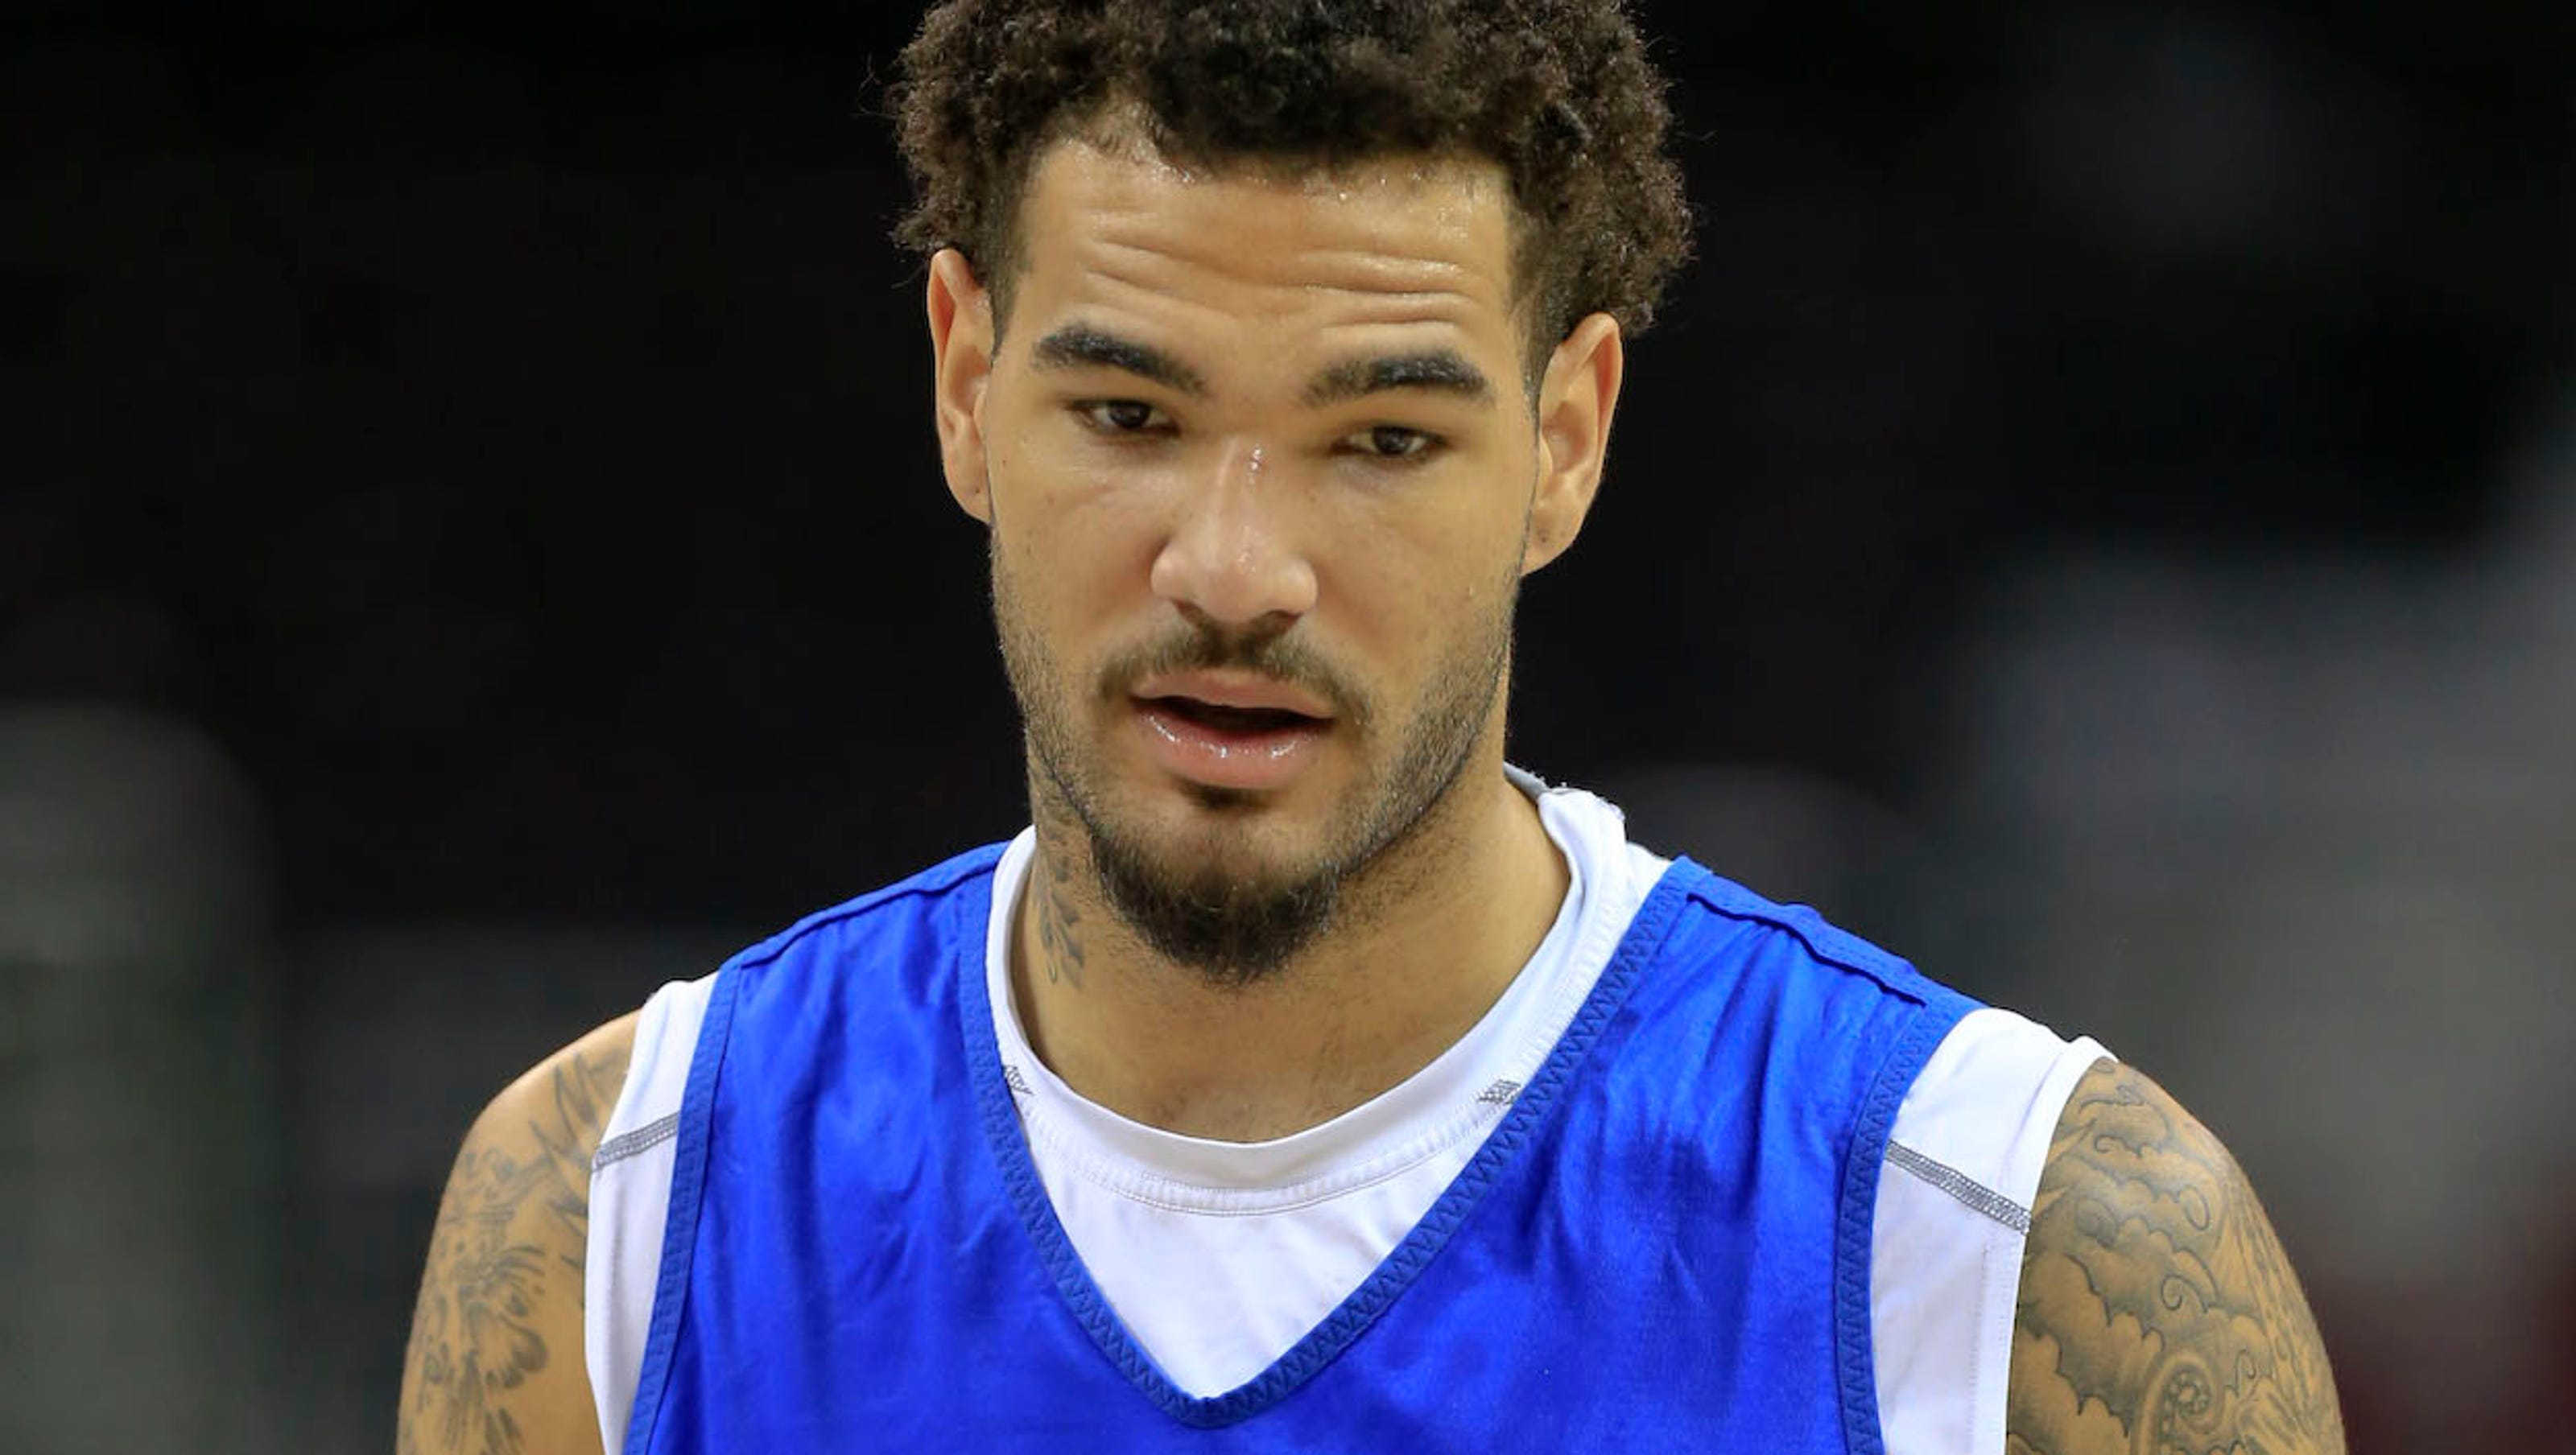 The Undefeated Kentucky Wildcats: Willie Cauley-Stein Loves The Game, Leads Undefeated